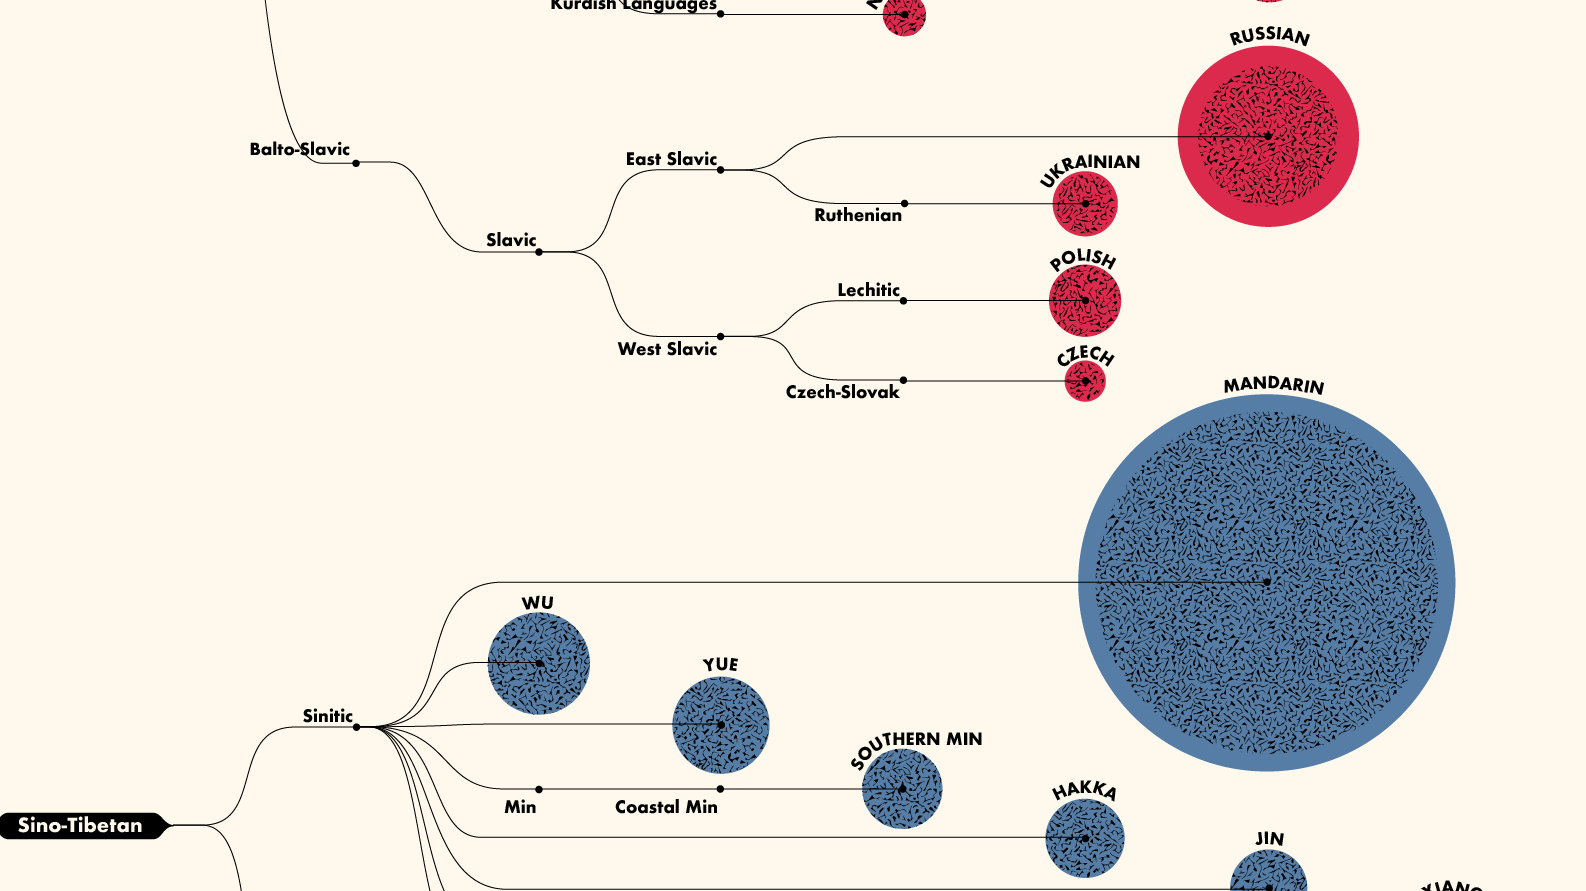 A Fascinating Diagram Breaking Down The 100 Most-Spoken Languages In The World - Digg